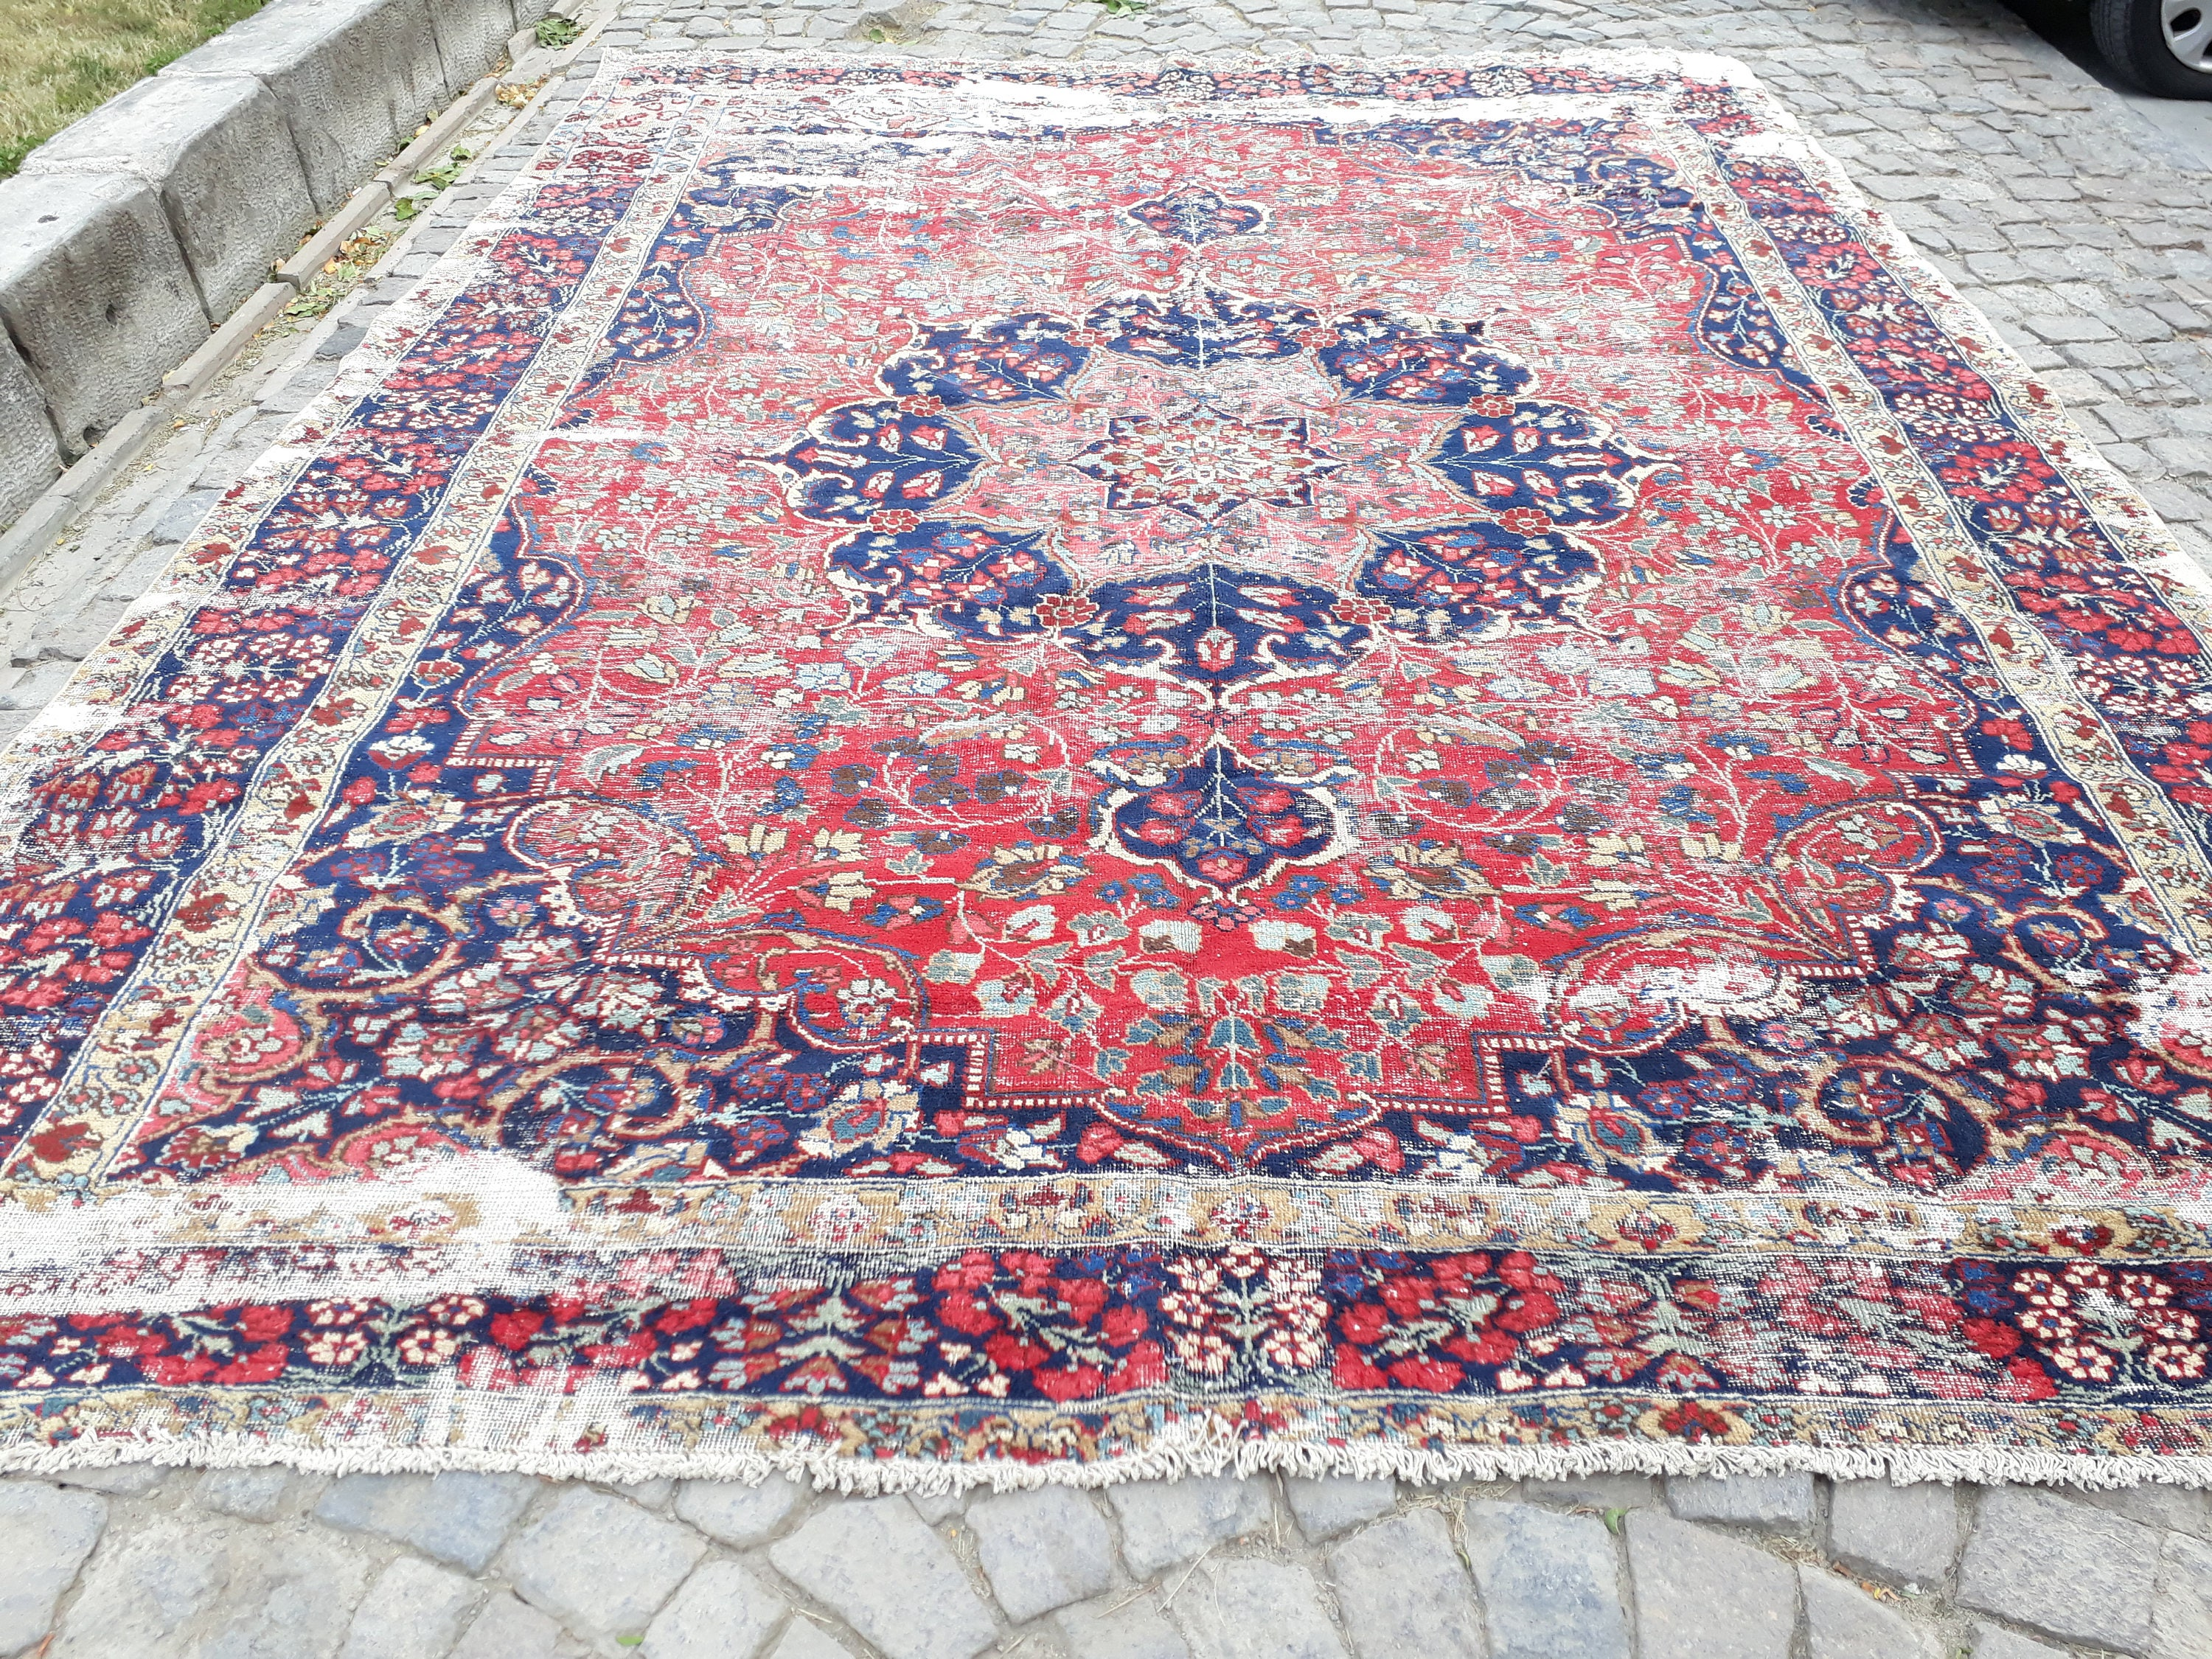 reviews mahieu cotton and is following temple wool mul sku bohemian webster under the sometimes eve also listed network manufacturer rug numbers flatweave